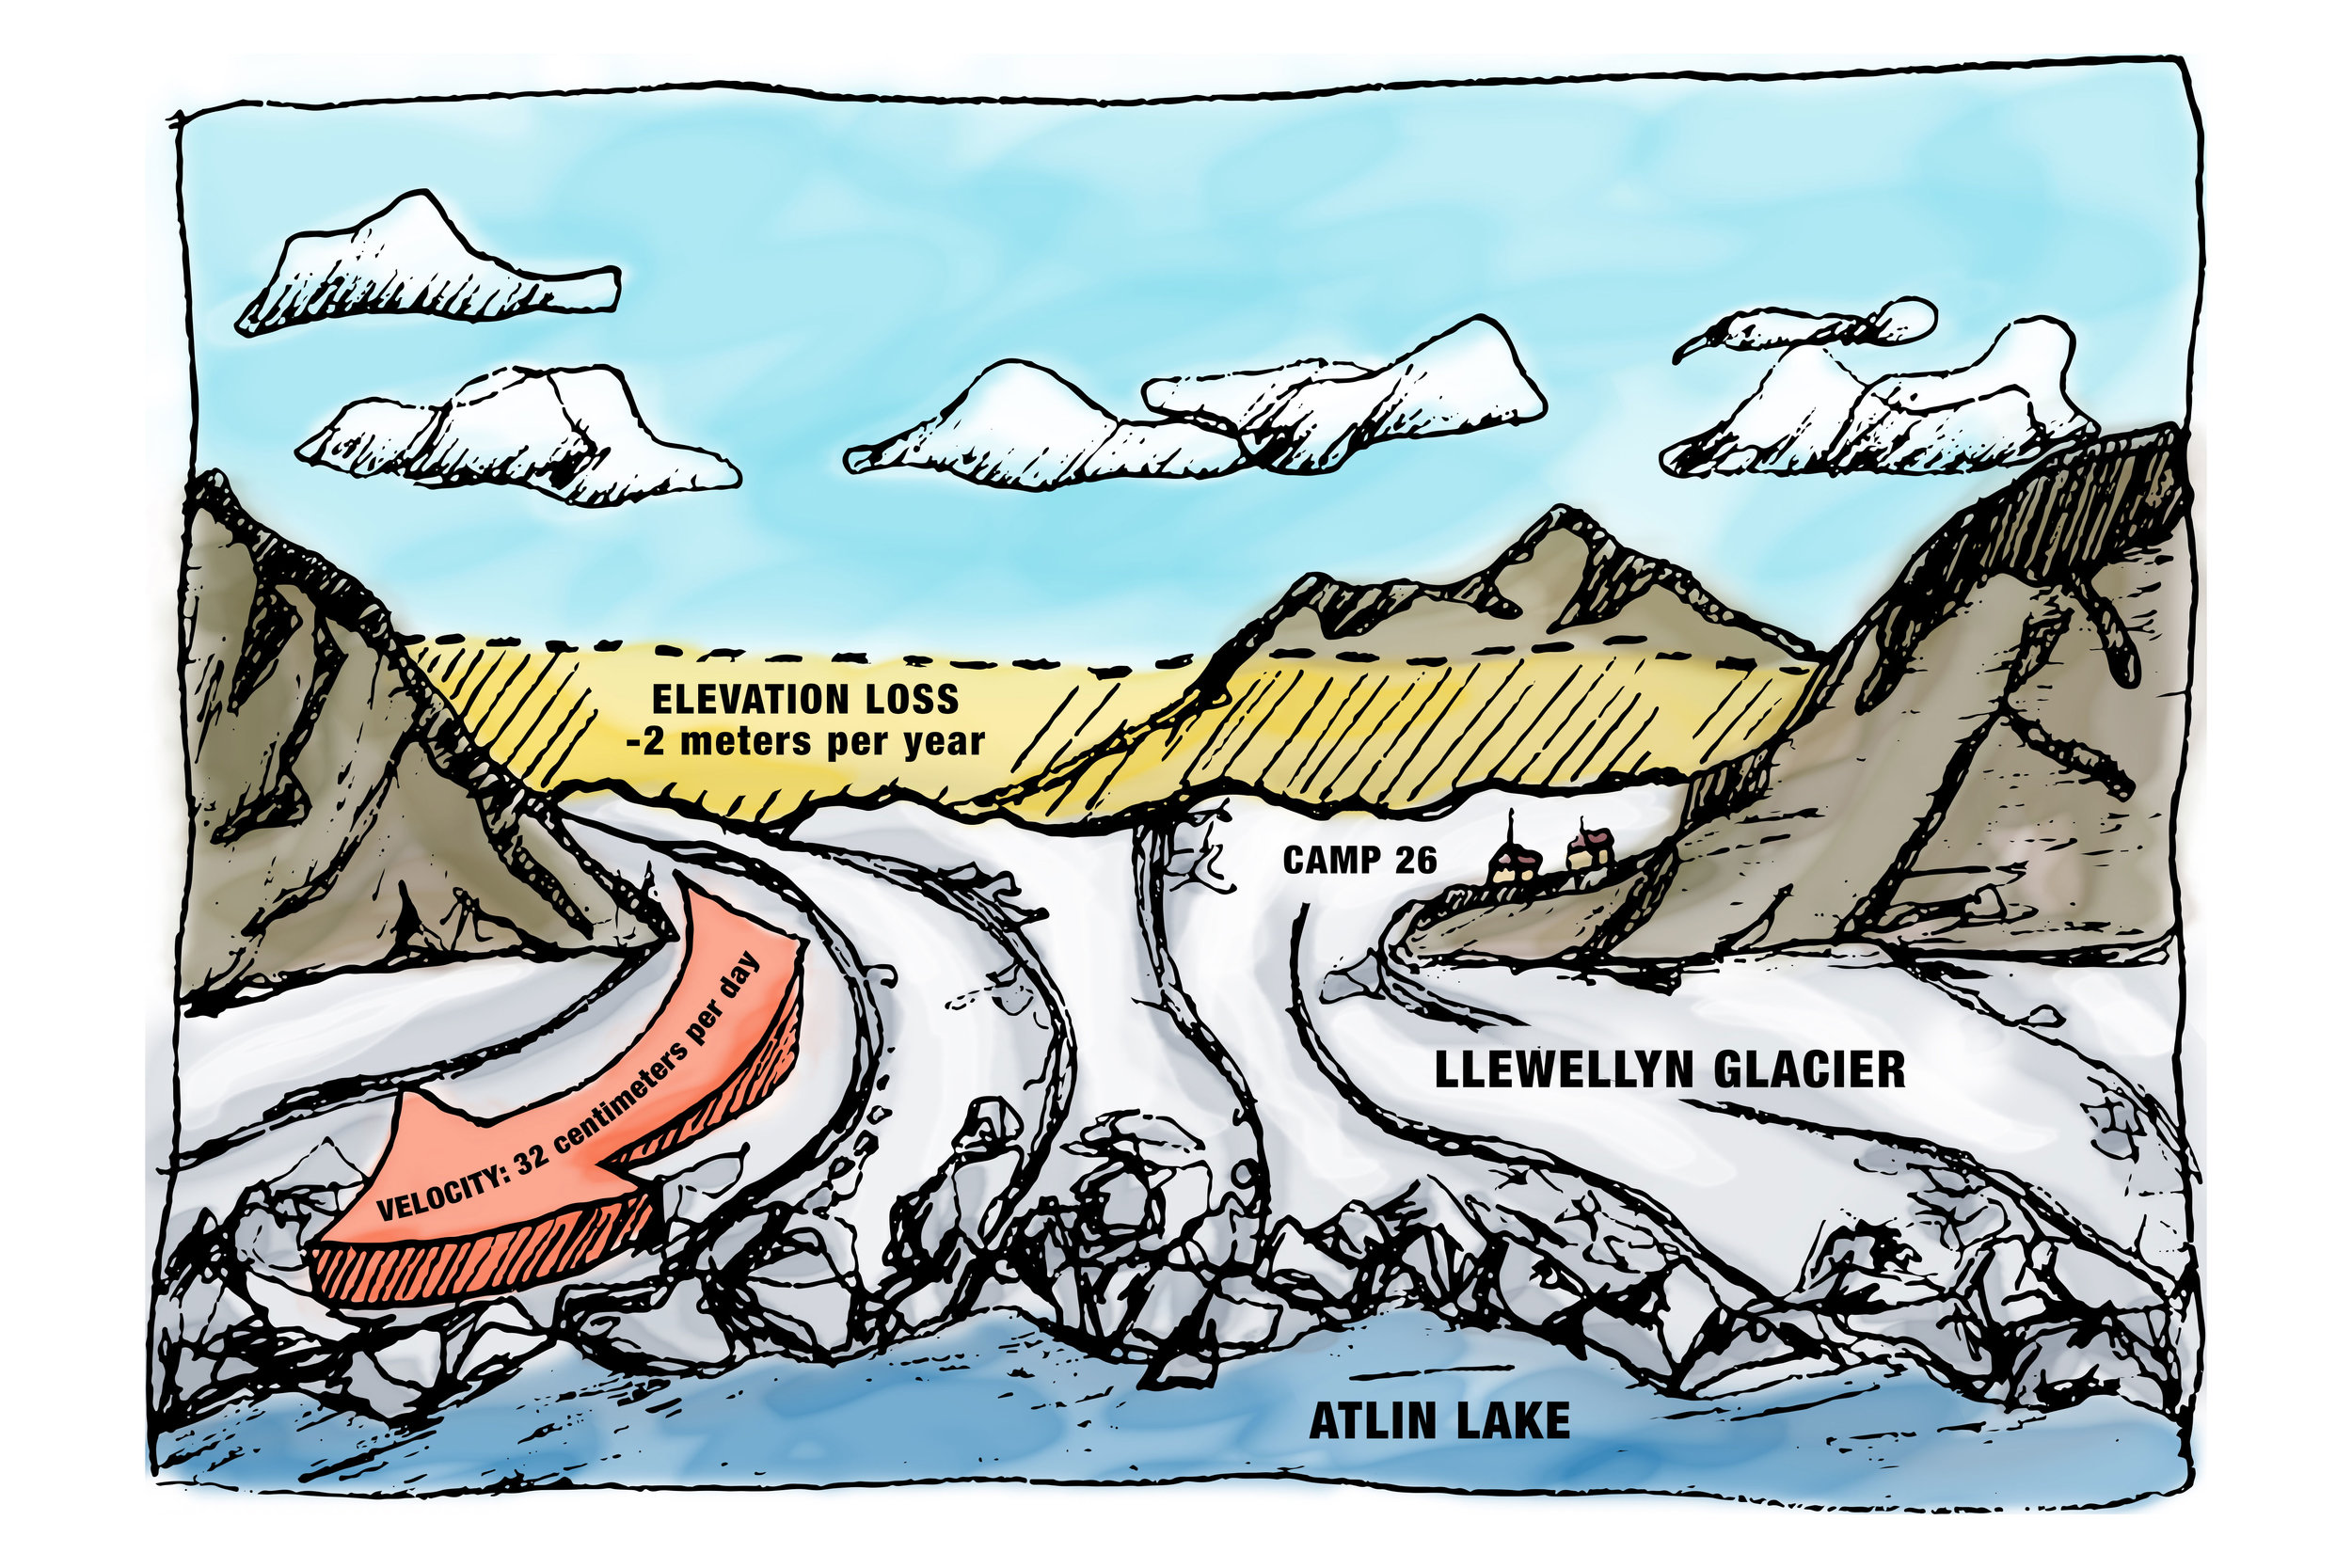 Glacier velocity and surface elevation loss on the Canadian side of the Juneau Icefield. Image credit: Grace Juneau.